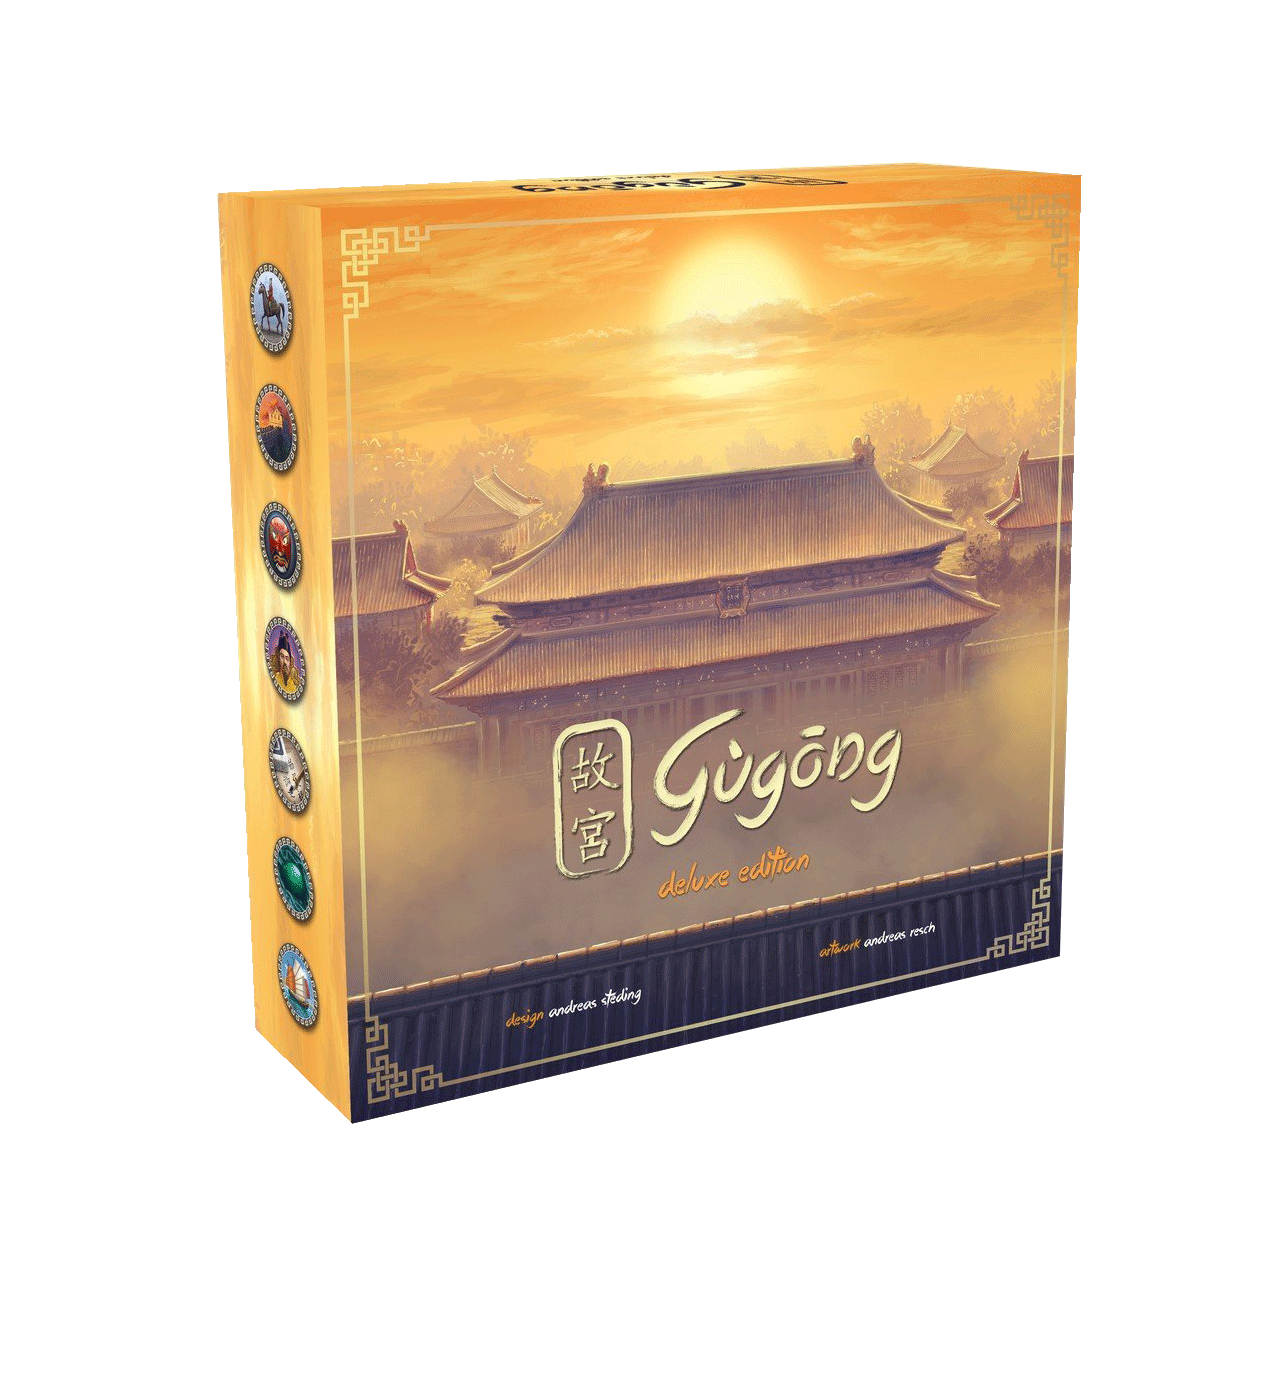 Gugong Deluxe Edition Board Game